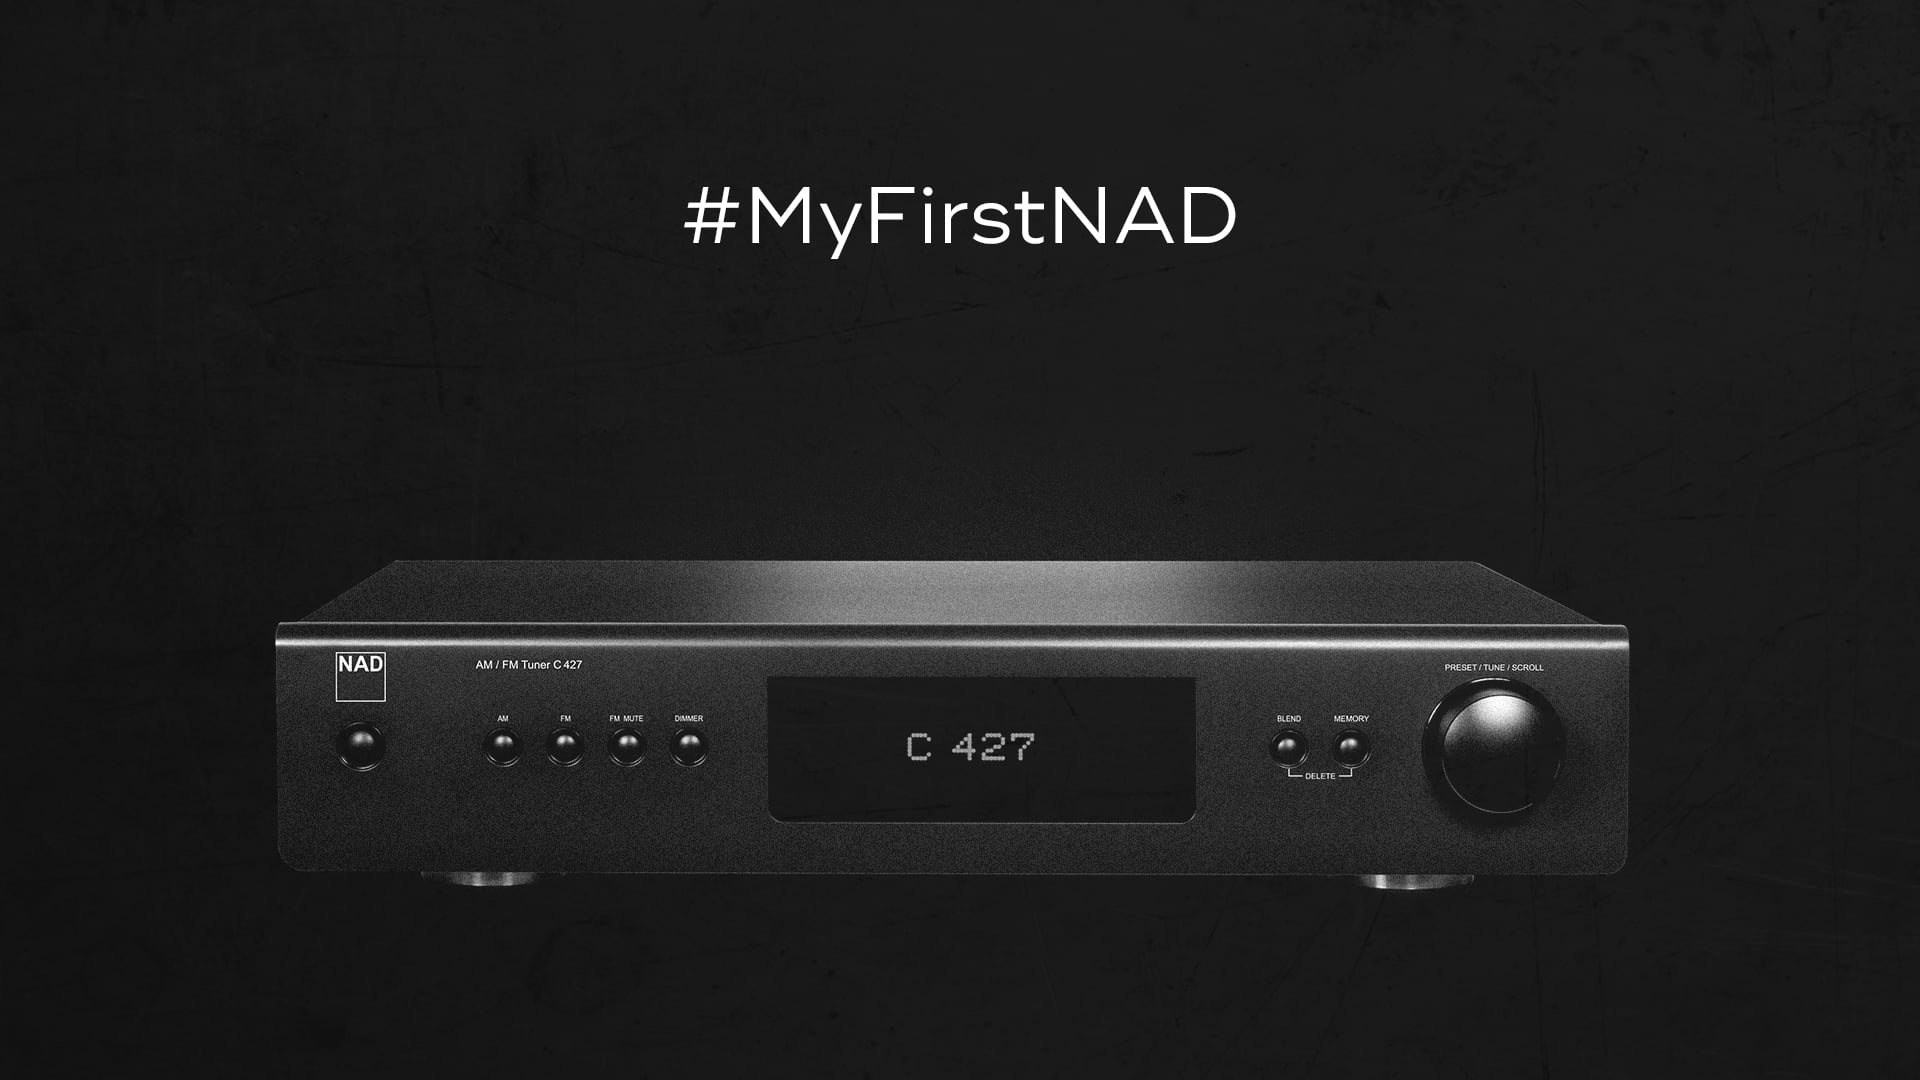 My First NAD Image